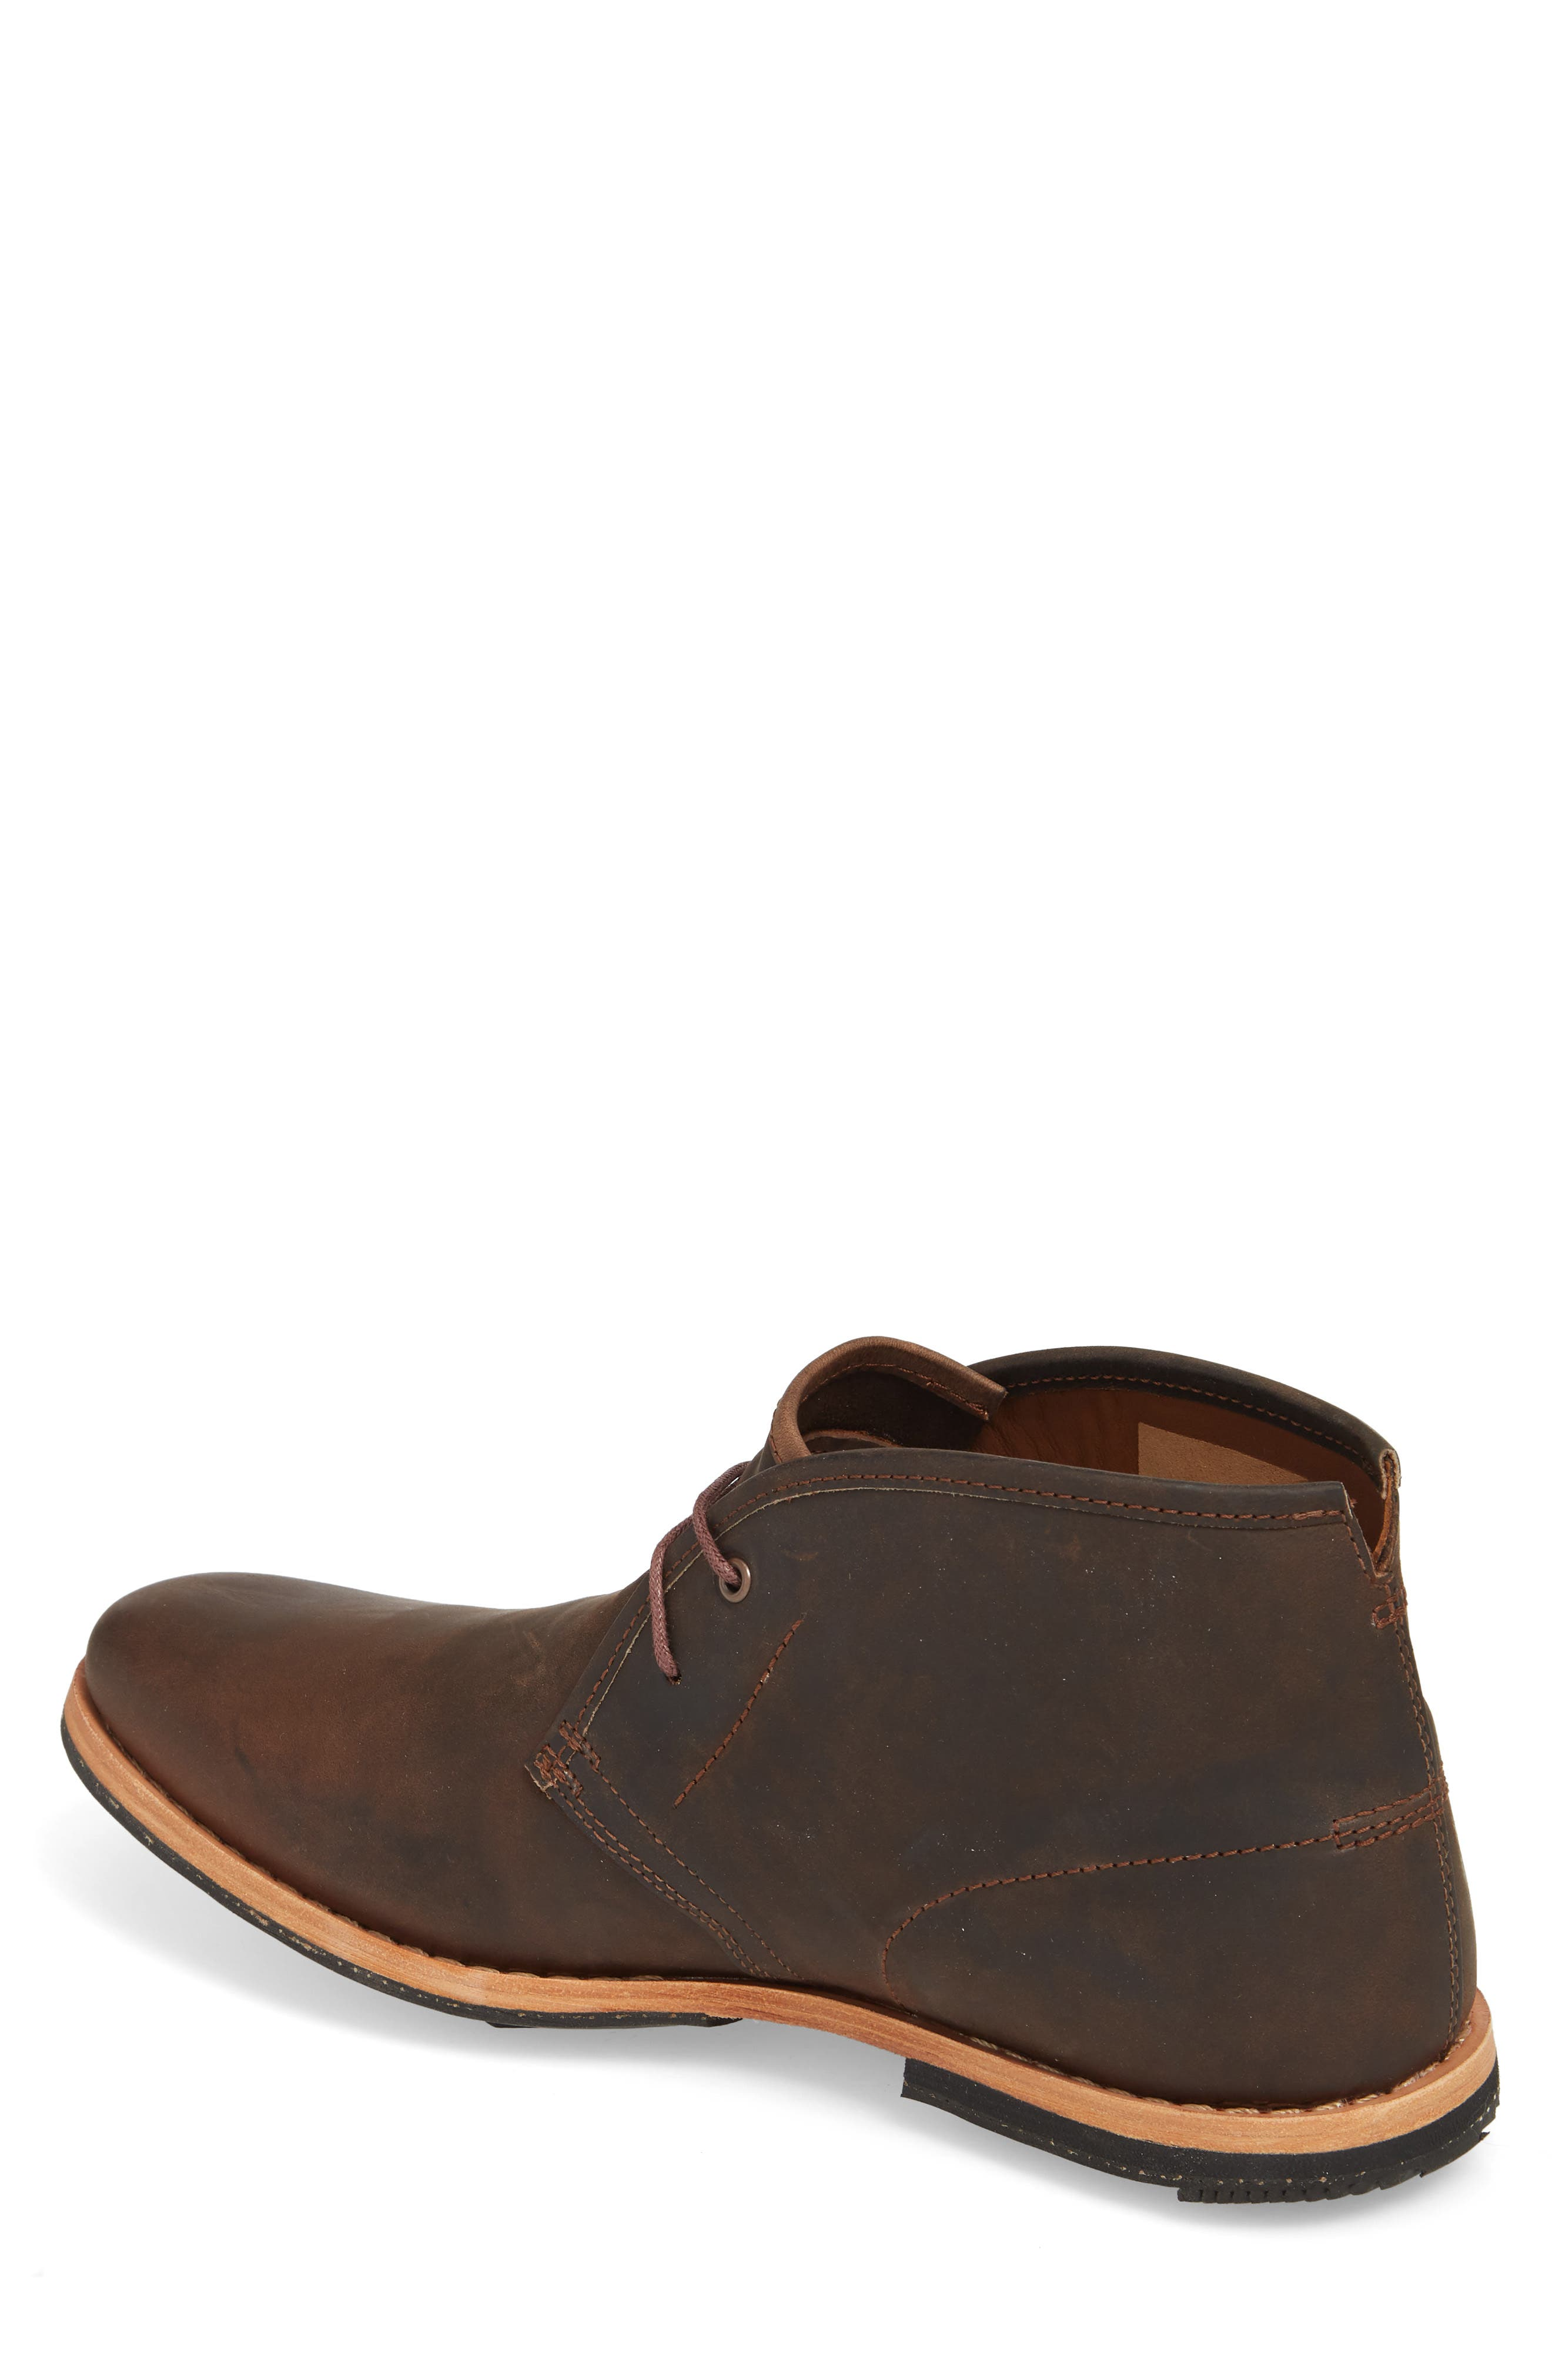 Wodehouse Lost History Chukka Boot,                             Alternate thumbnail 2, color,                             BROWN LEATHER